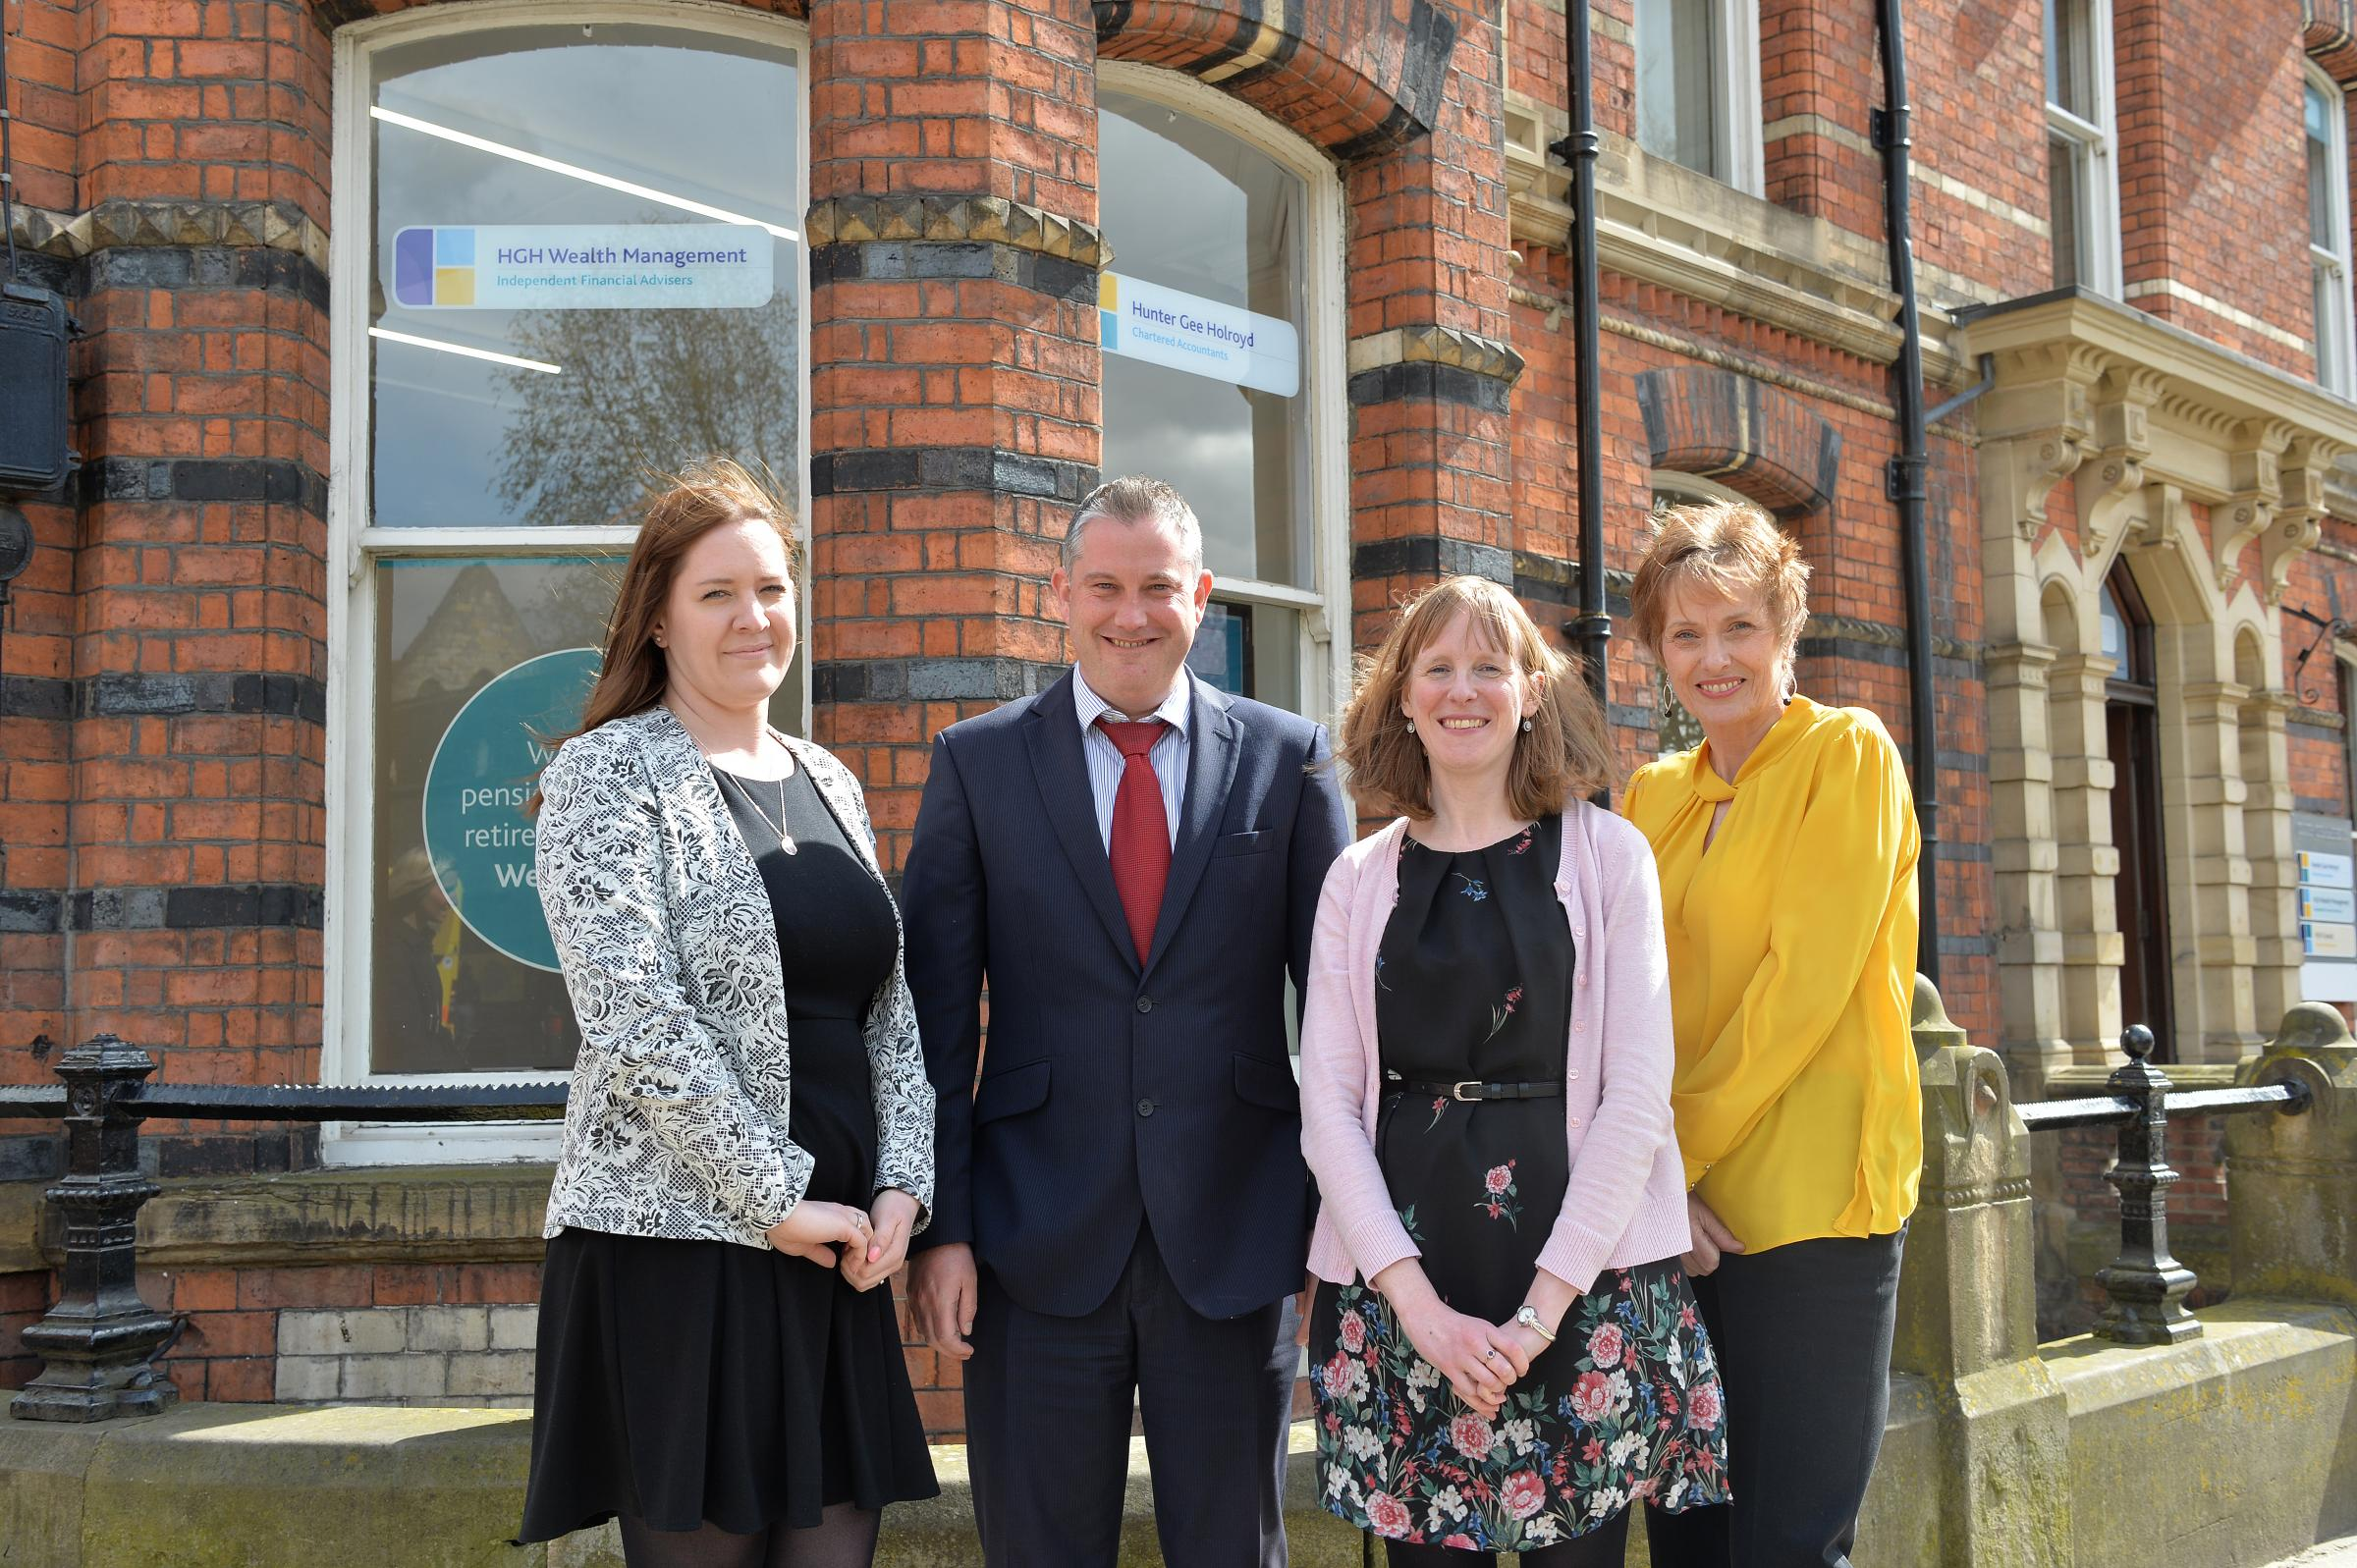 The expanded HGH Wealth Management Team and Nick Lawson, Director at Club Chambers, Museum Street, York.From left to right: Sarah Coldwell, Nick Lawson (Director), Sharon Ward, Susan Ruddick